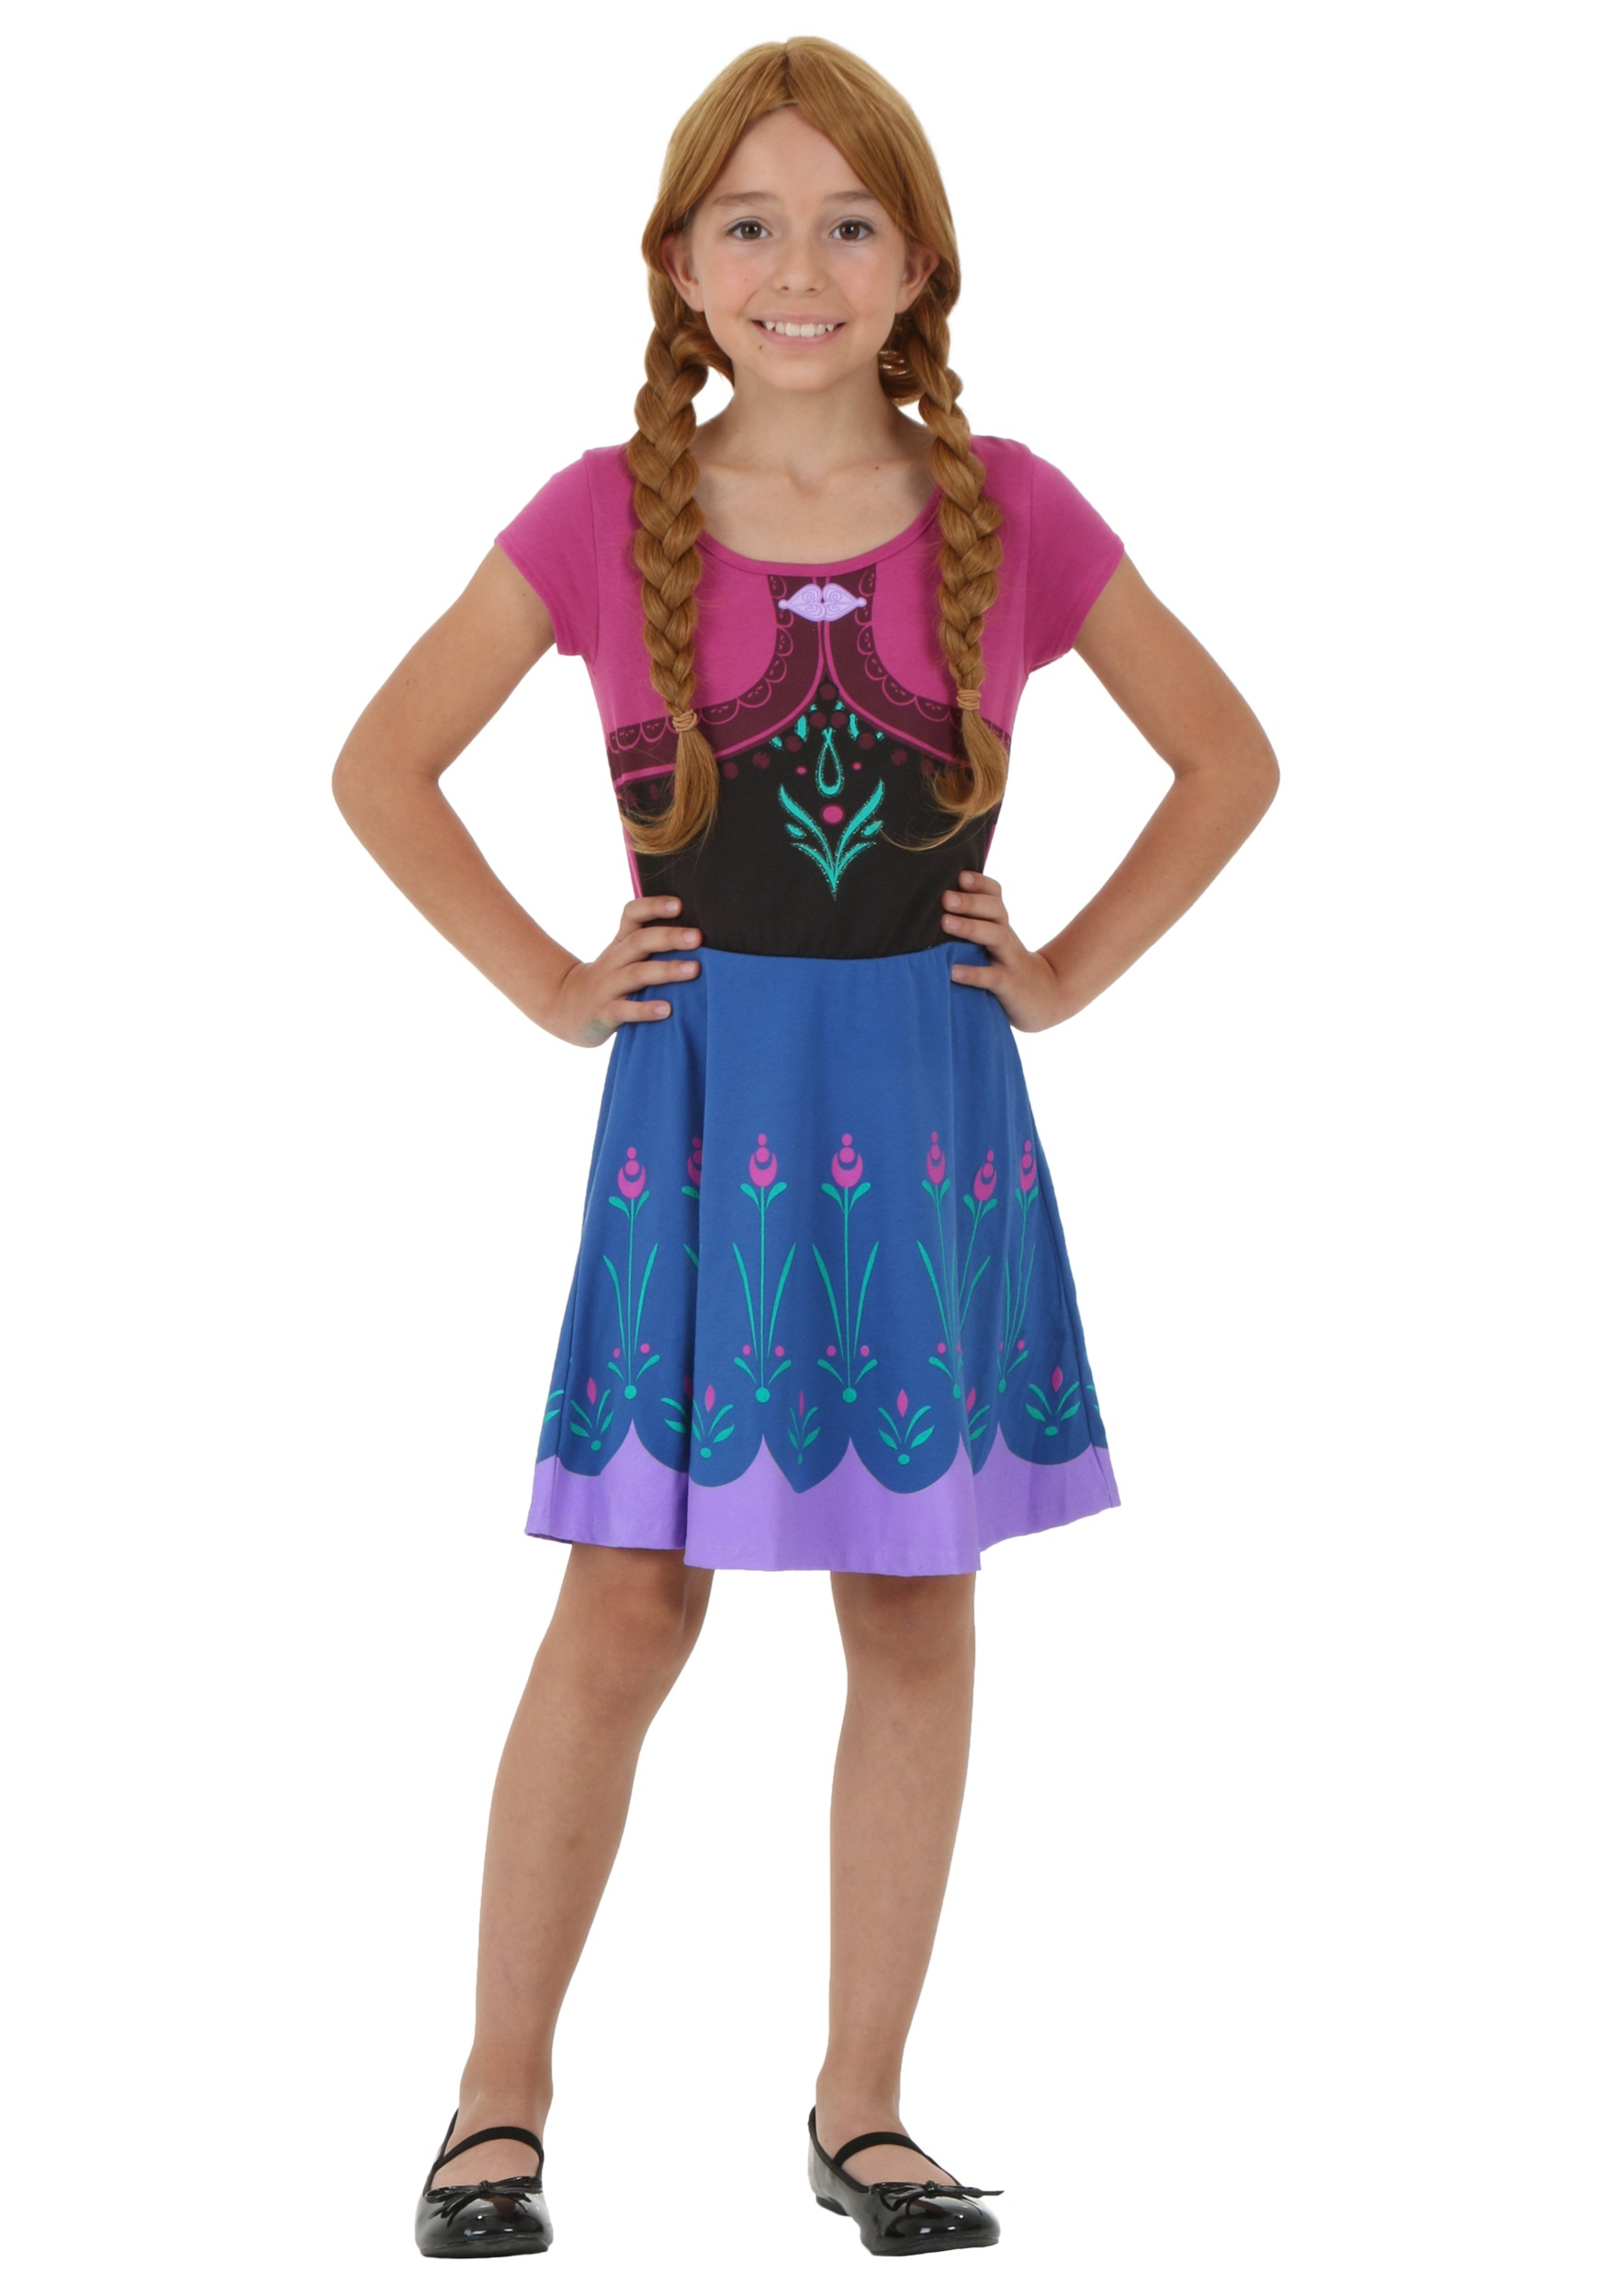 Frozen Tween I am Anna Dress  sc 1 st  Halloween Costumes & Disney Frozen Olaf Anna u0026 Elsa Costumes - HalloweenCostumes.com